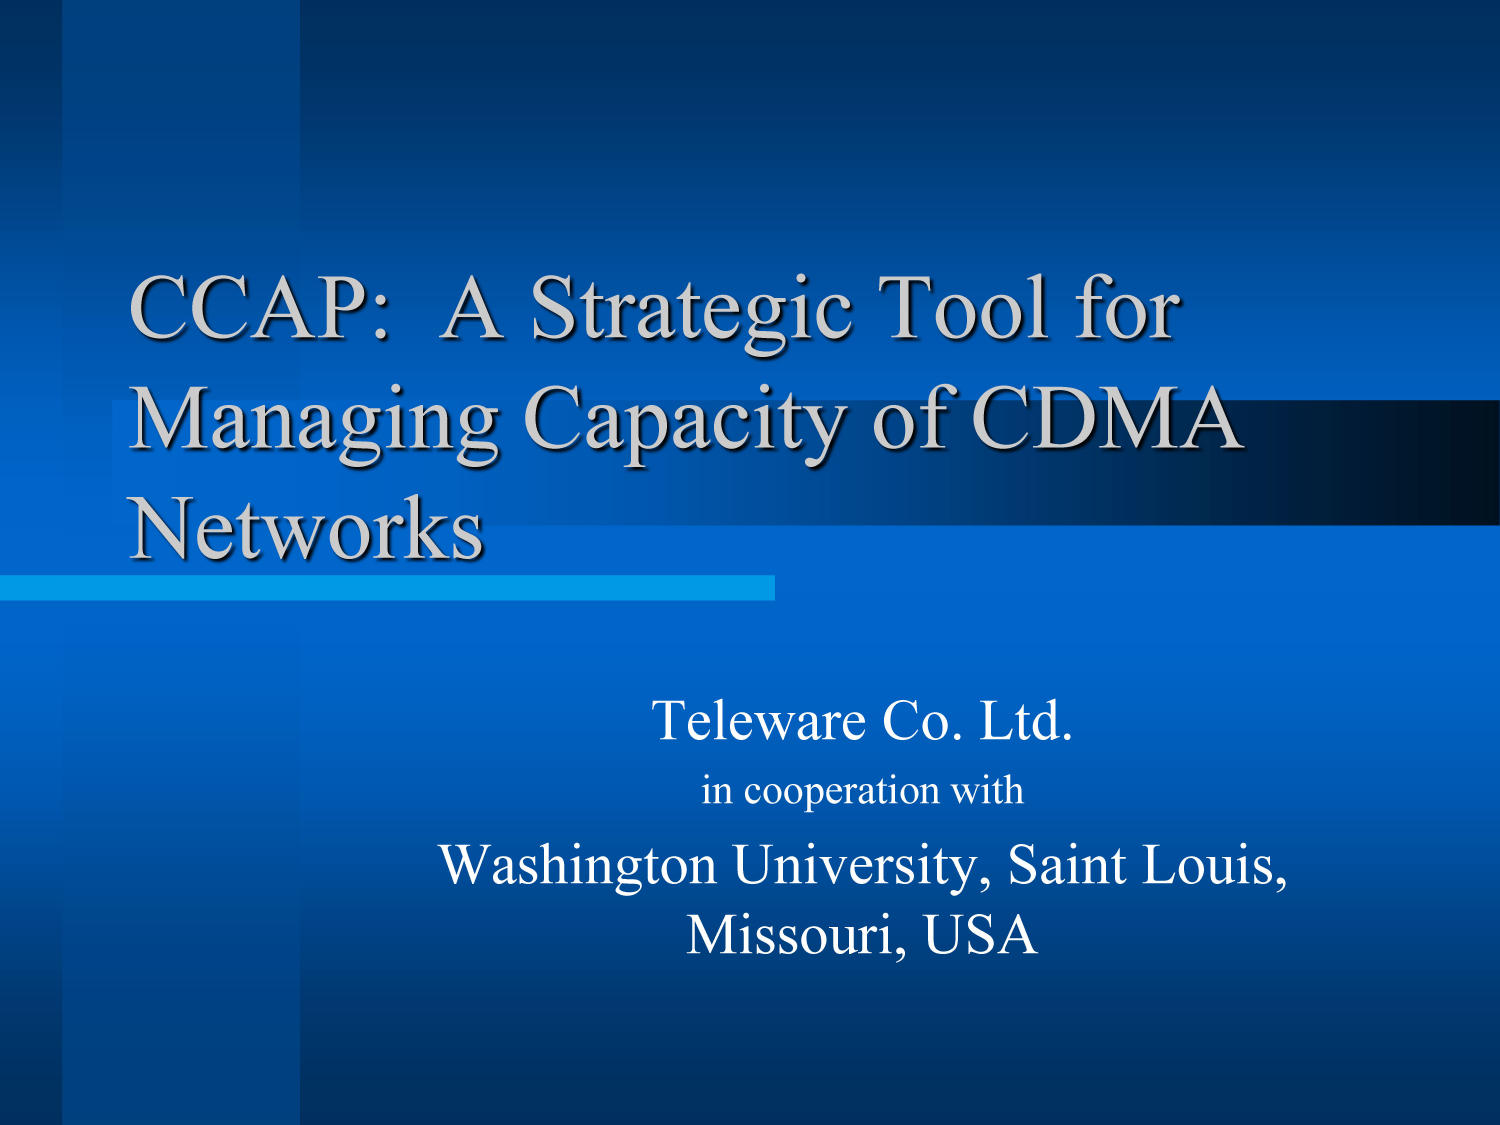 CCAP: A Strategic Tool for Managing Capacity of CDMA Networks                                                                                                      [Sequence #]: 1 of 25